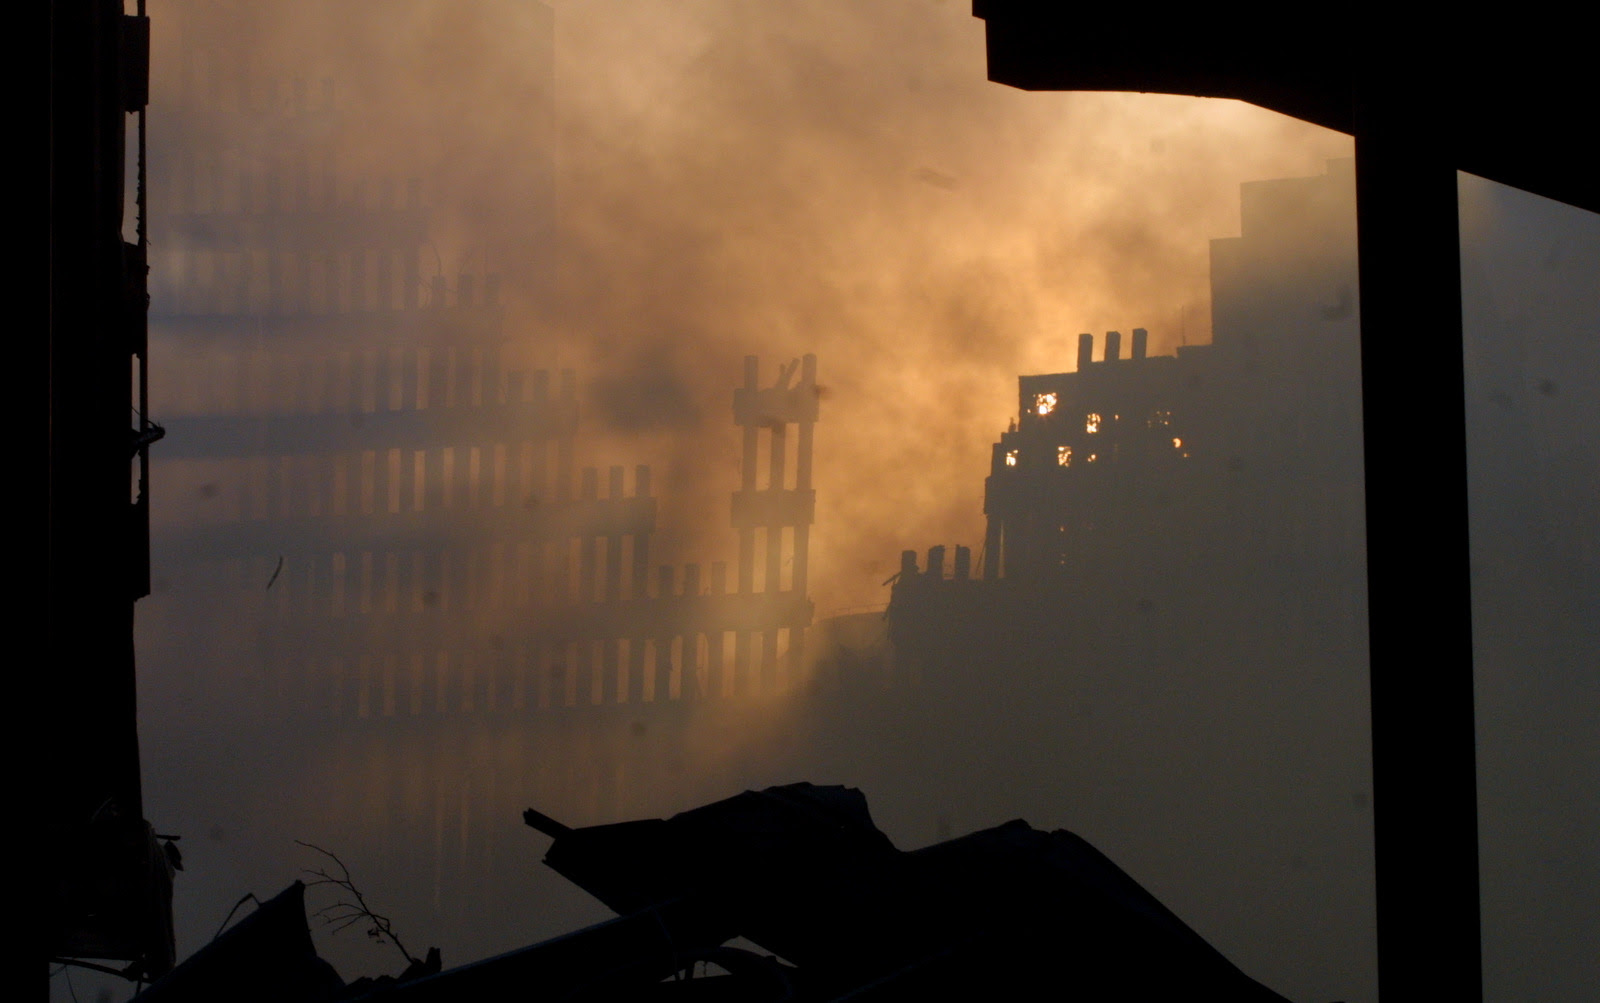 Light is seen through the debris at ground zero on September 12, 2001 after the September 11 terrorist attacks.(AP/Baldwin)